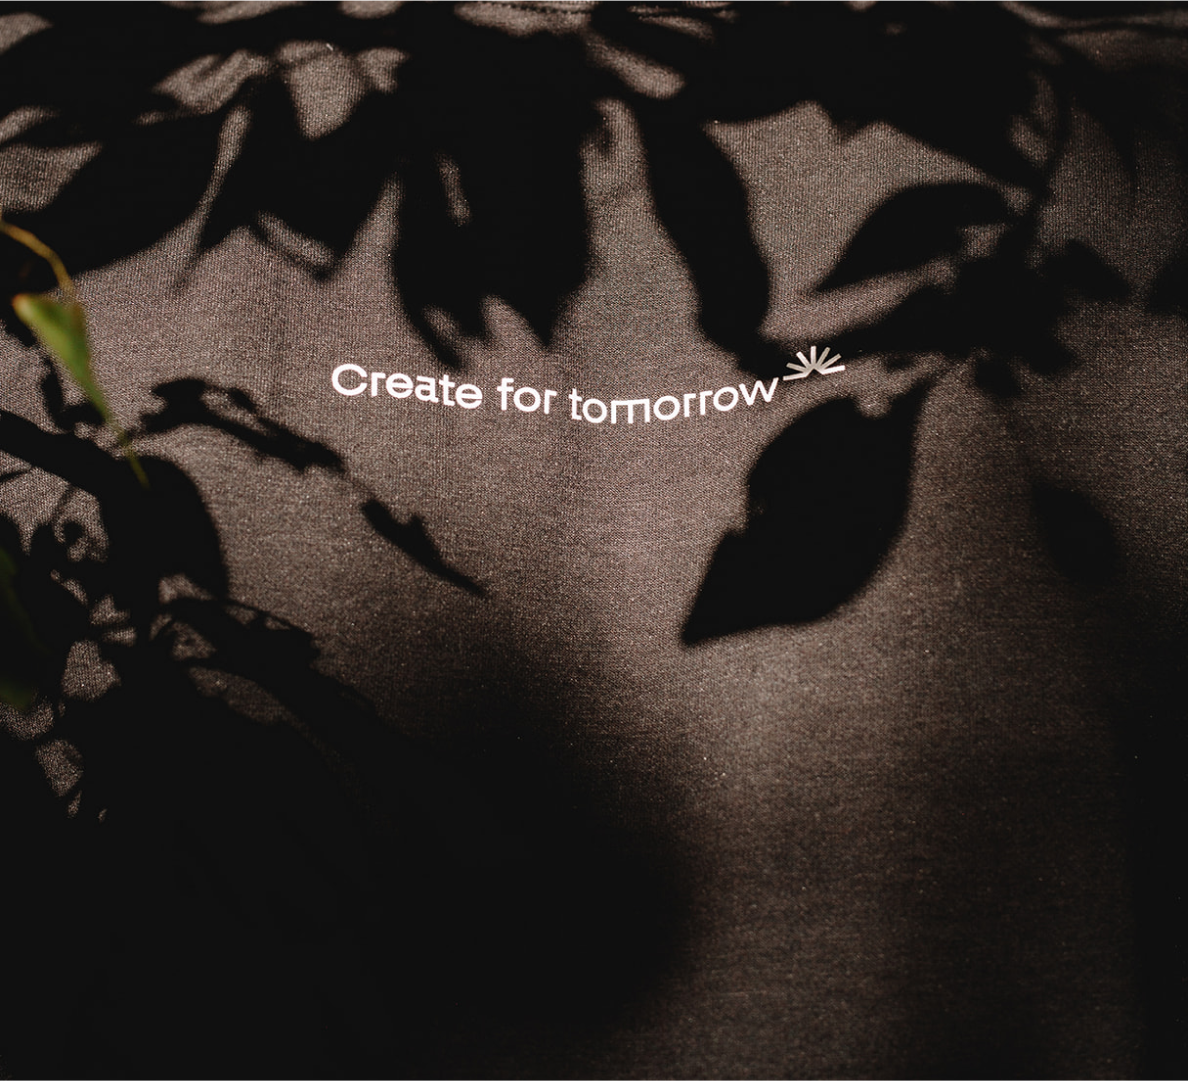 zoom in tee image front text